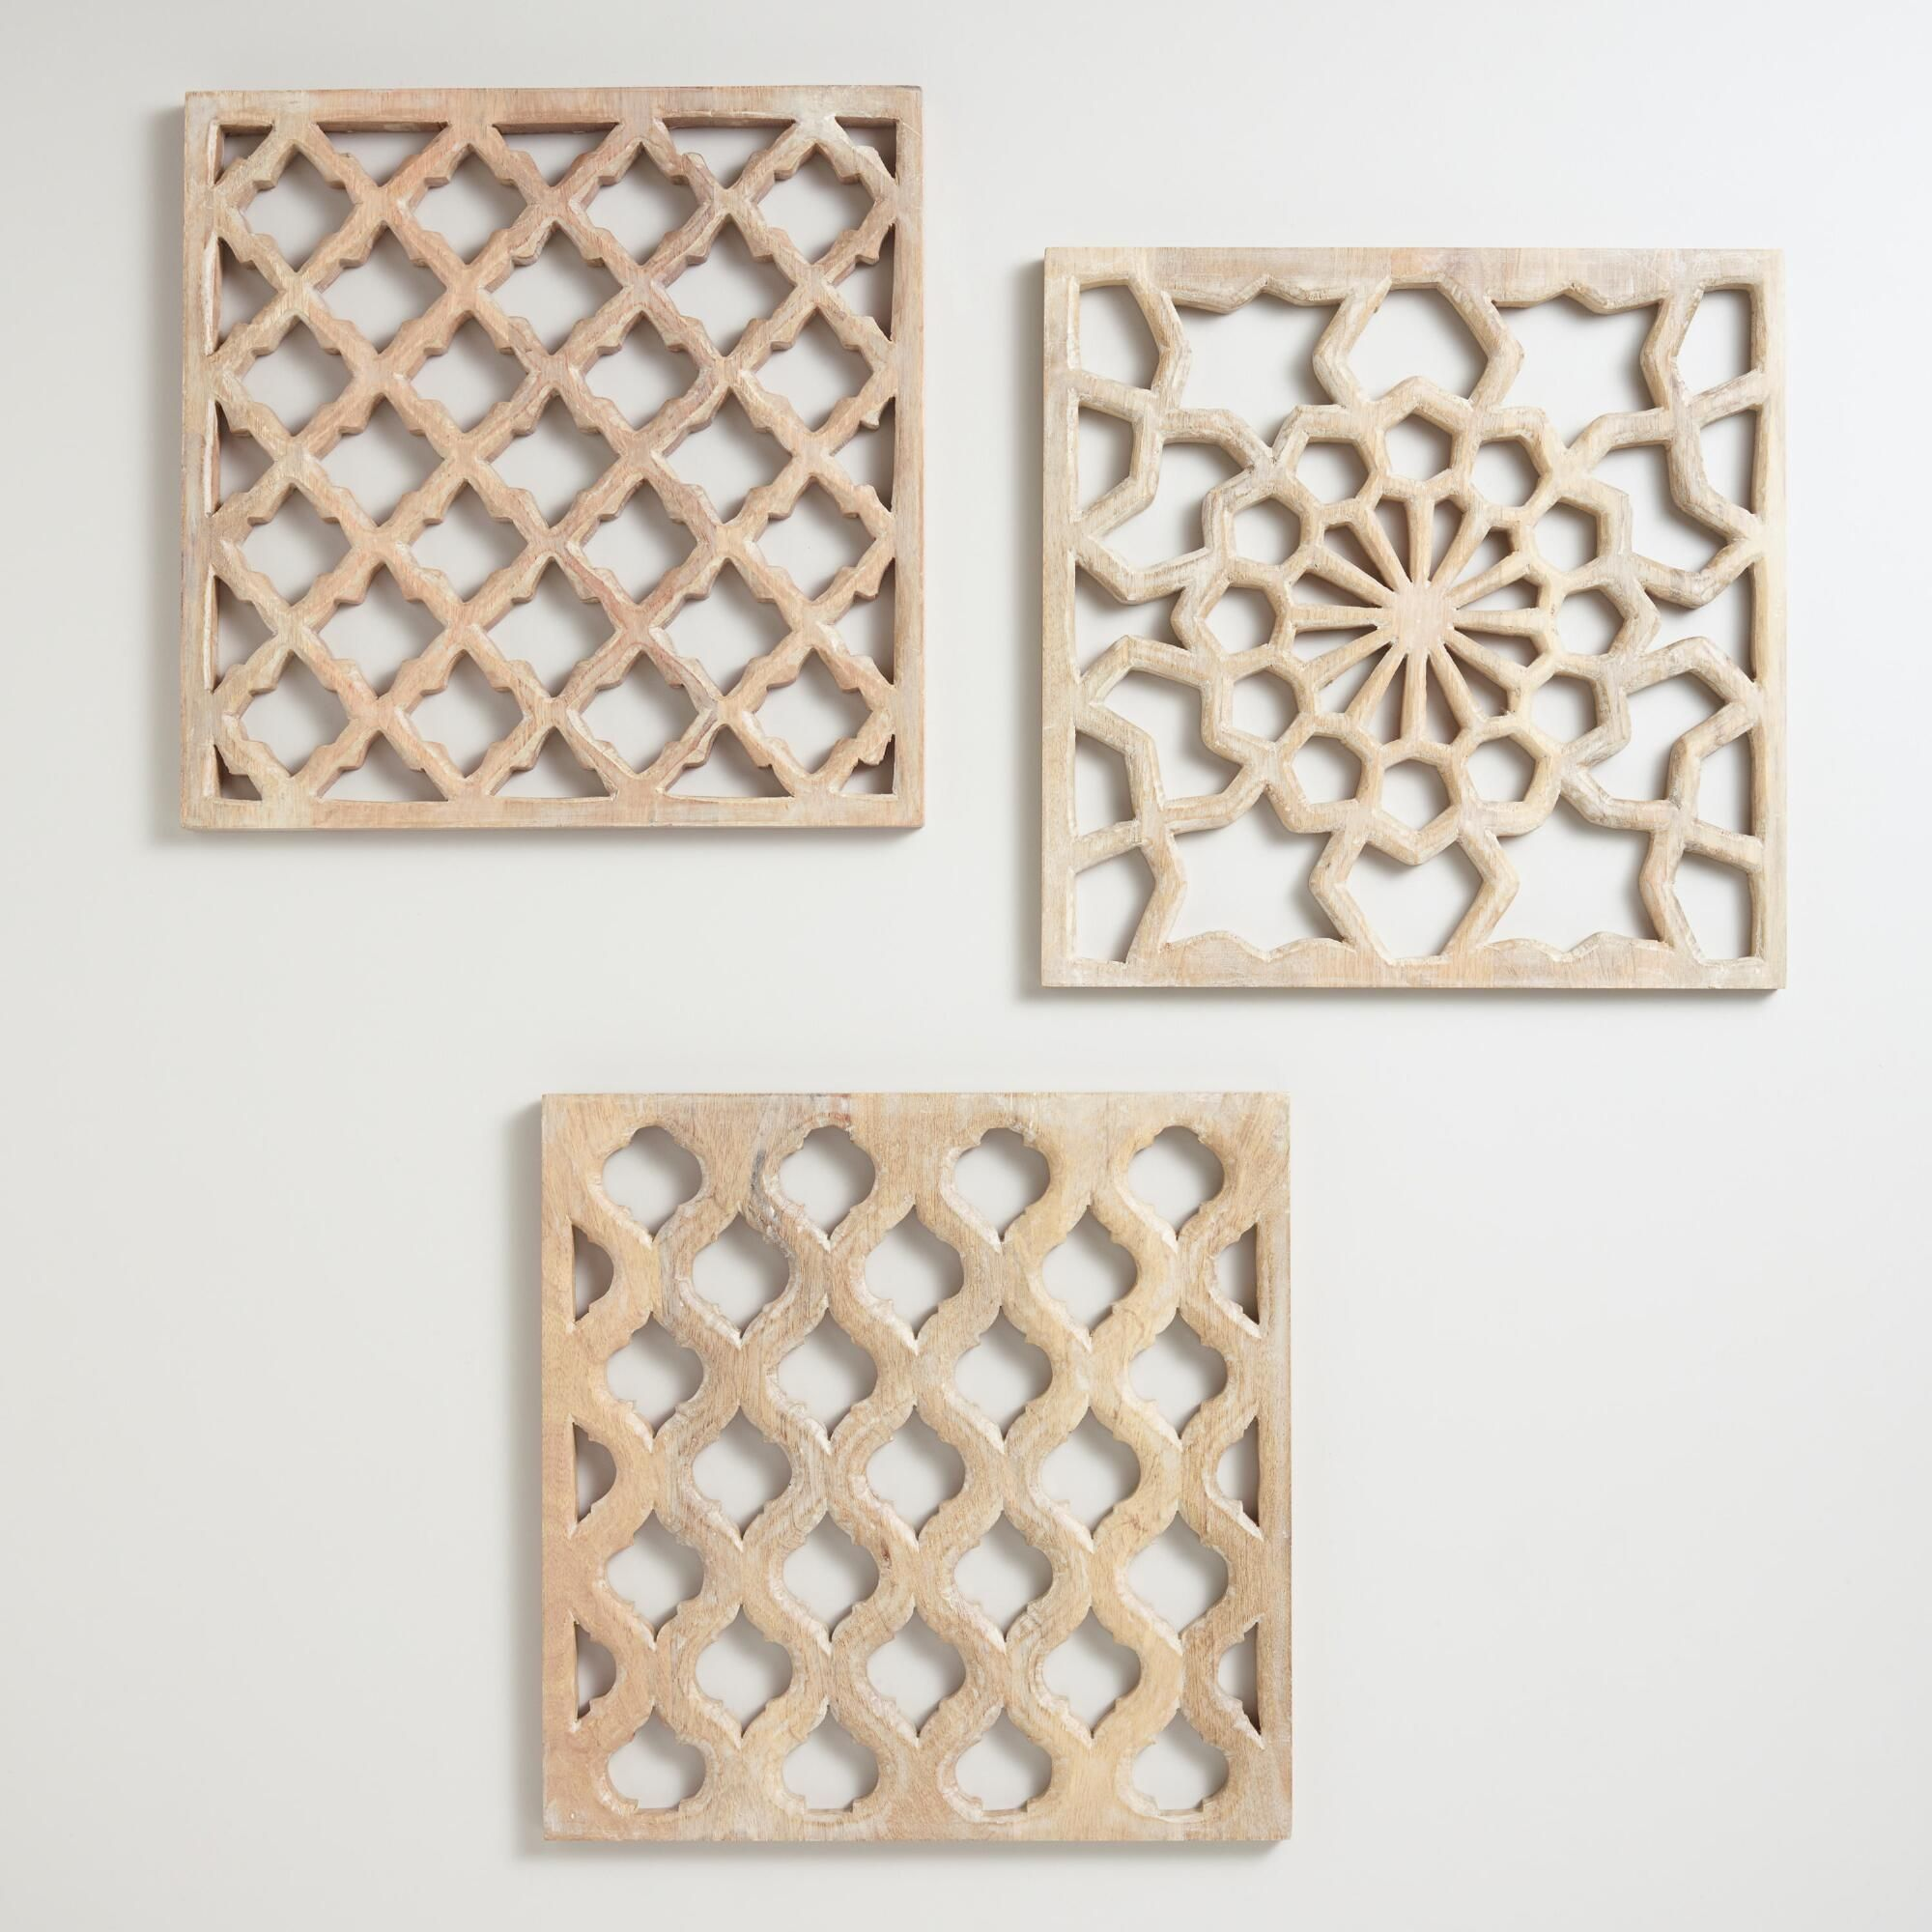 Hung In An Entryway, Living Room Or Bedroom, Our Set Of Three Nathan Carved  Wood Wall Panels Creates Visual And Textural Interest While Adding A Splash  Of ...